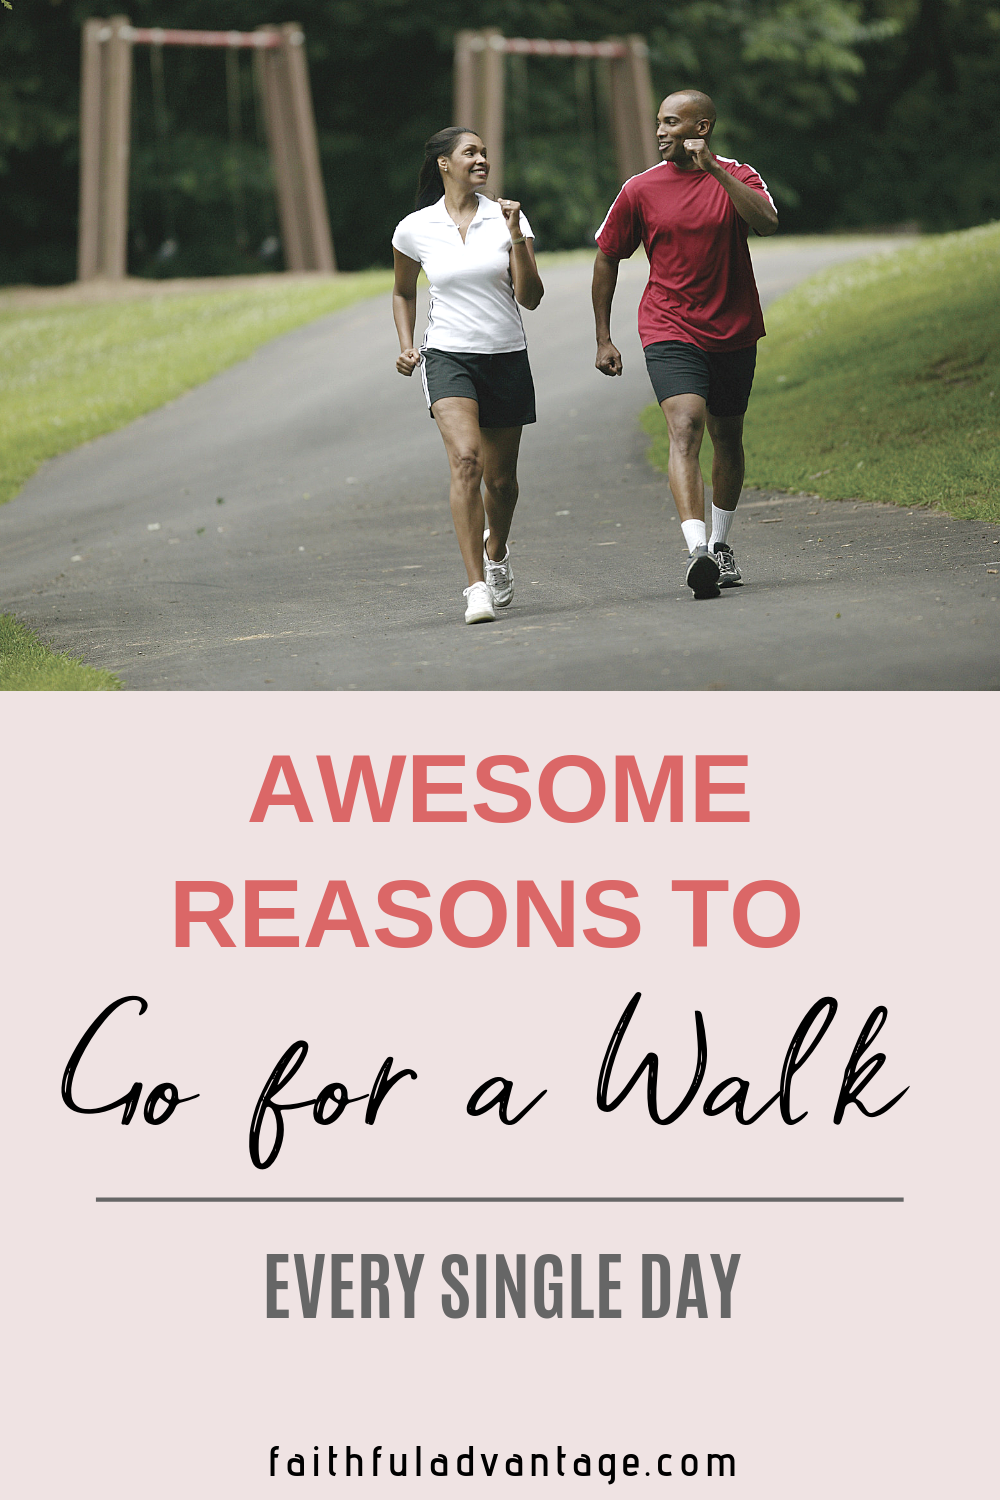 Reasons you should go for a walk every day - Faithful Advantage